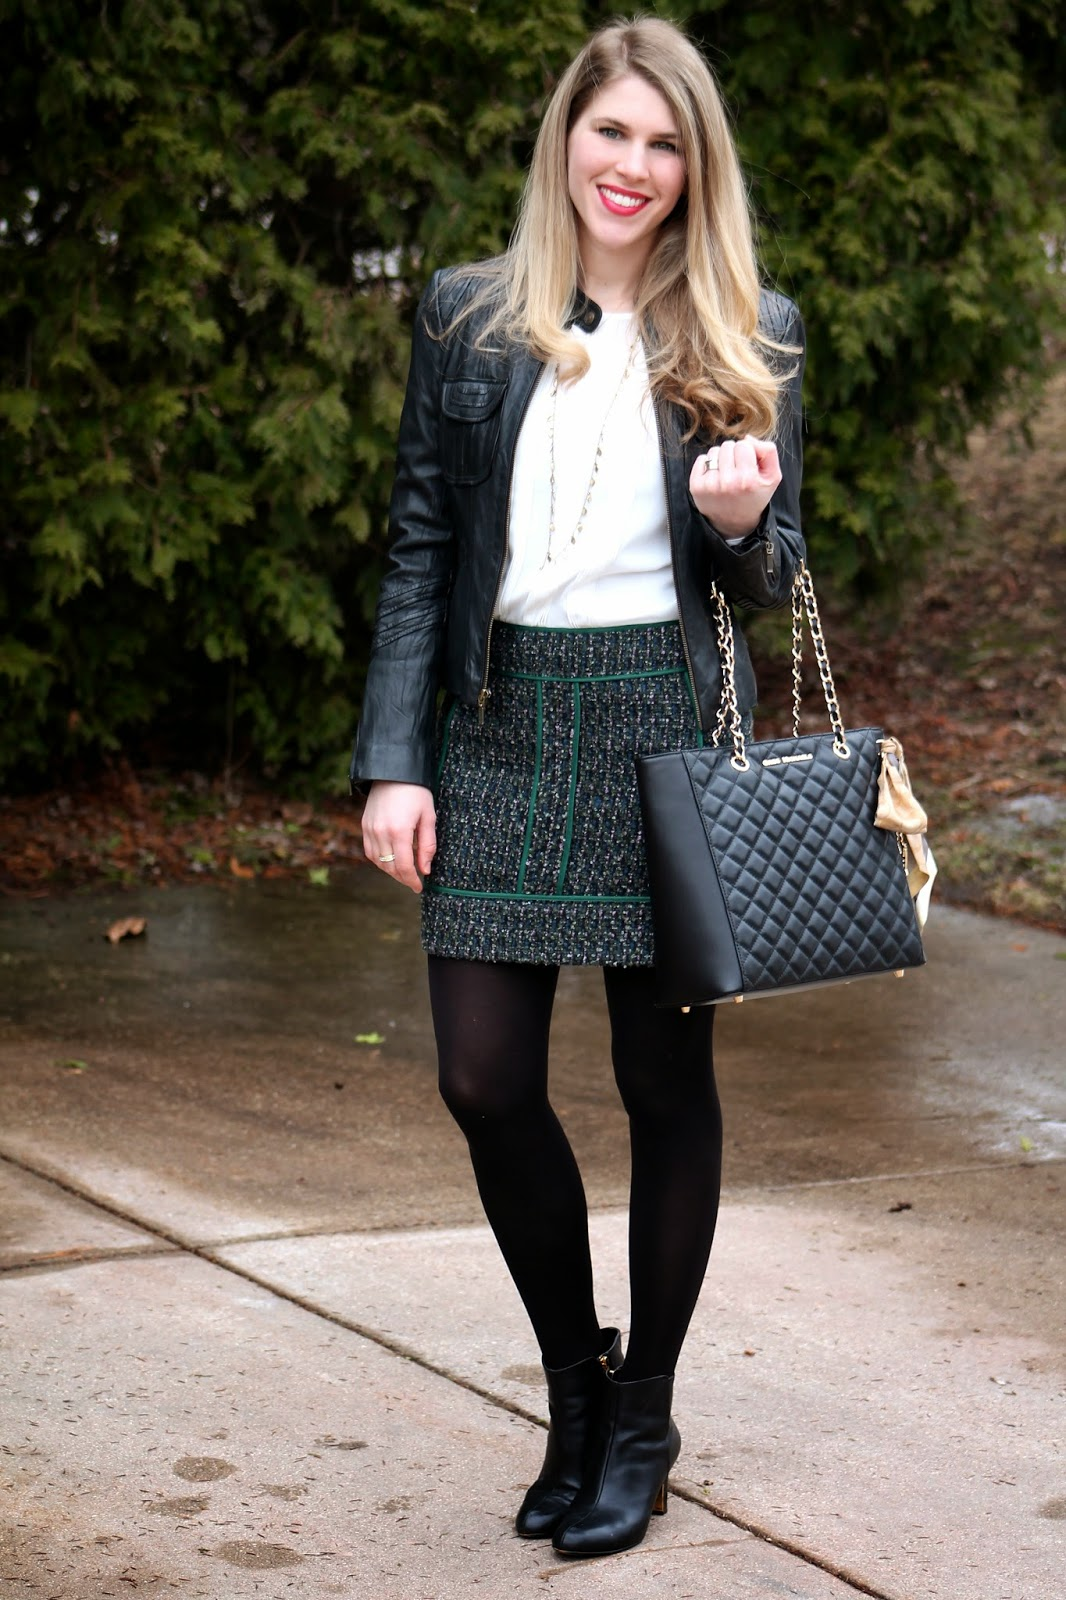 white chiffon blouse, black moto jacket, green black tweed skirt, booties, quilted leather tote bag